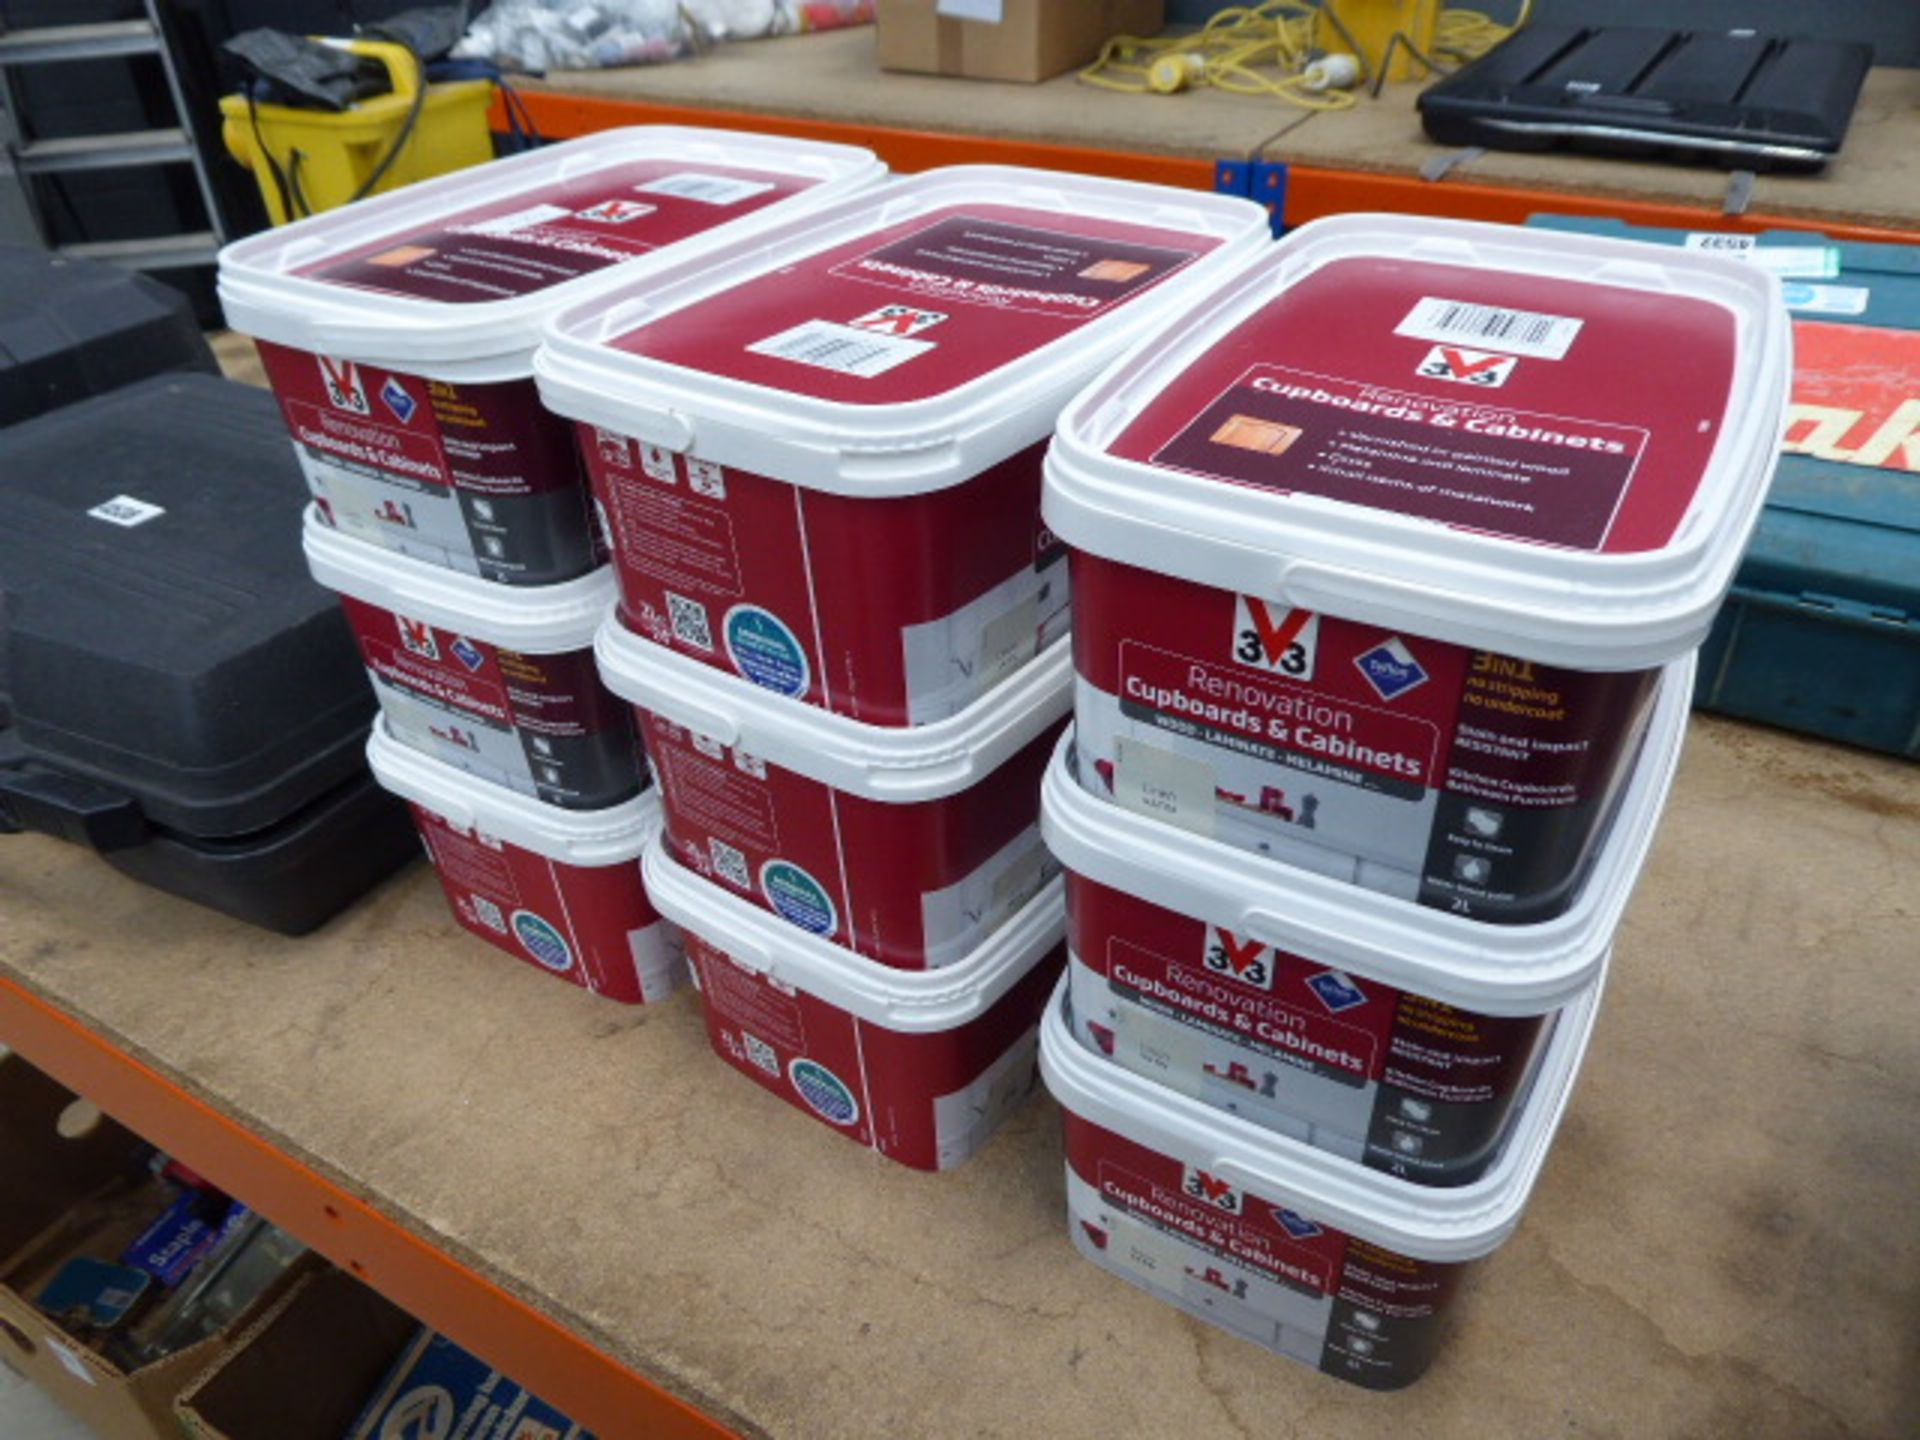 Lot 4537 - 9 tubs of linen satin, cupboard and cabinet paint